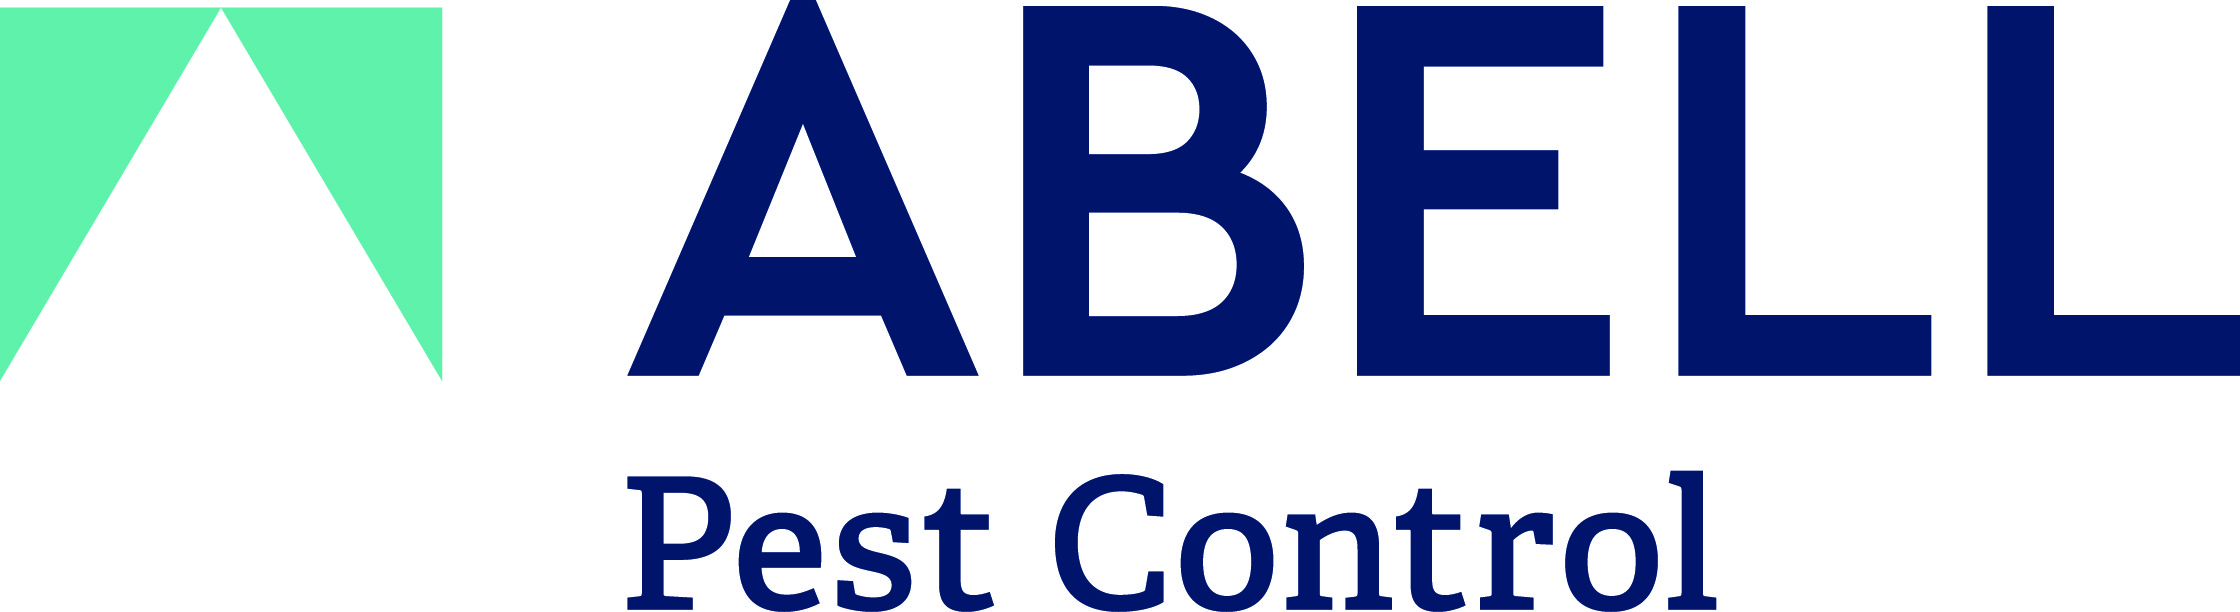 Abell Pest Control Surprises Employees with $400,000 Gift for This Holiday Season